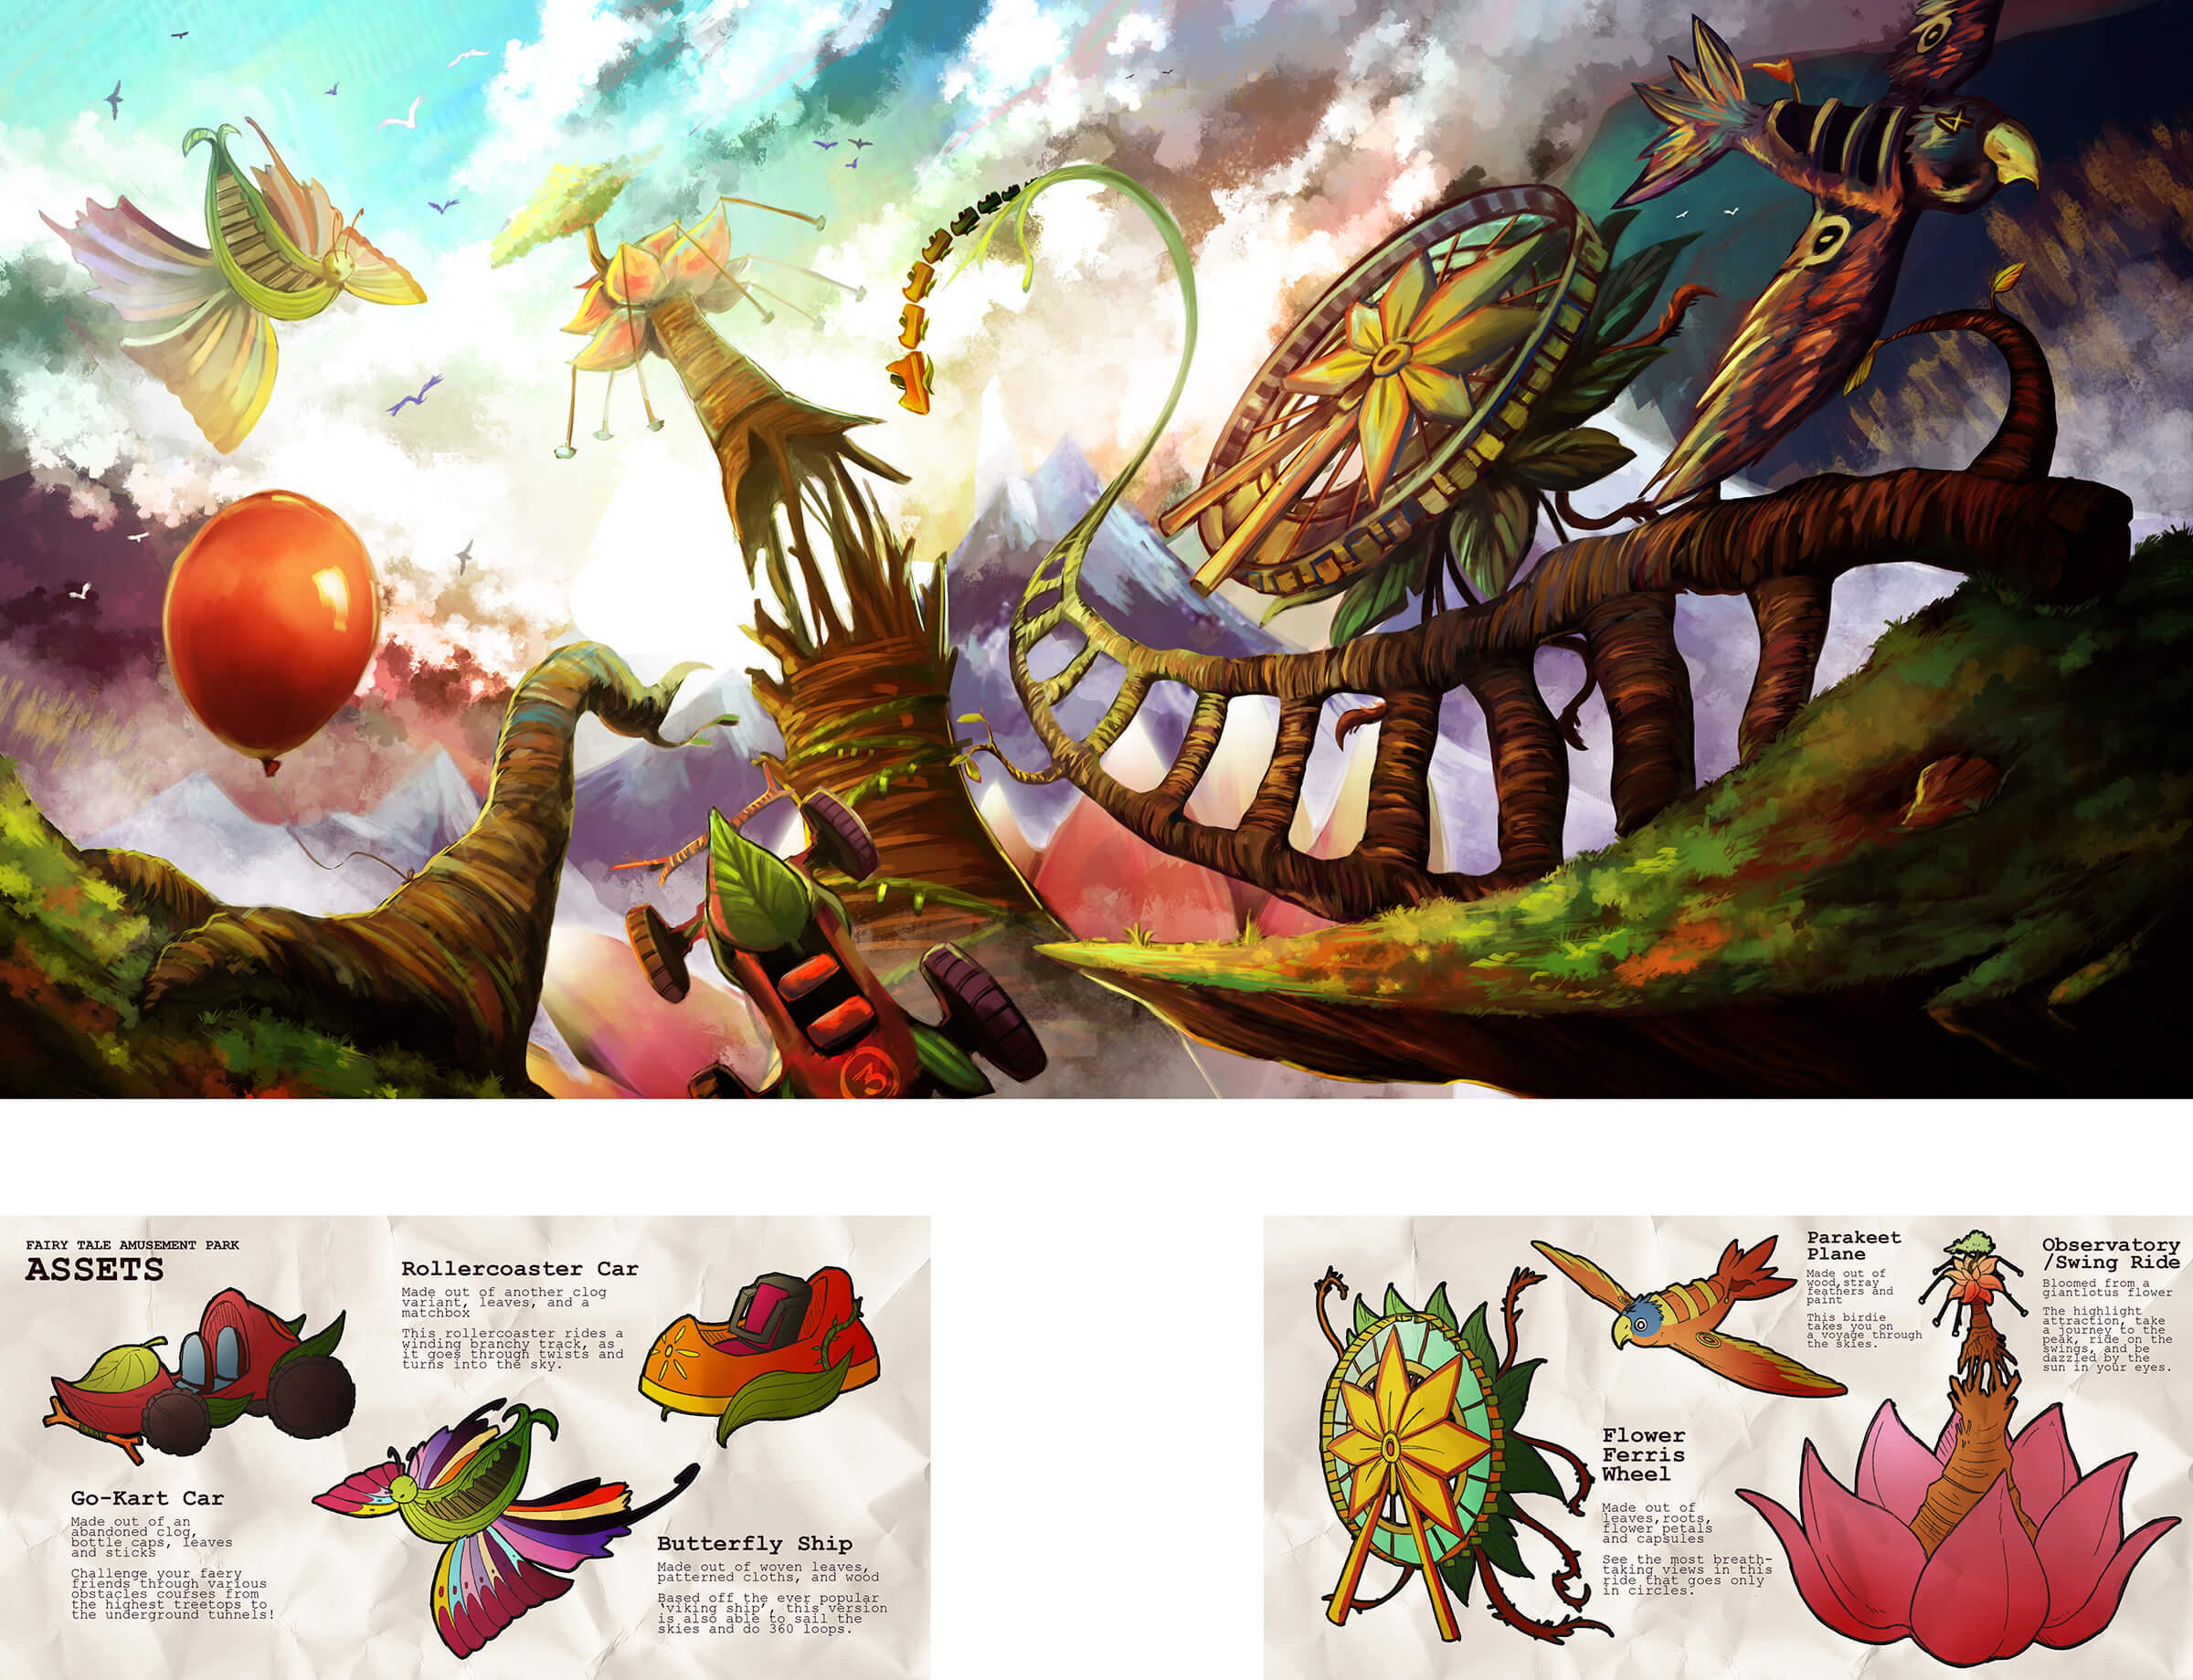 Colorful concept art for the rides in an organic theme park with attractions seemingly built out of living plants and animals